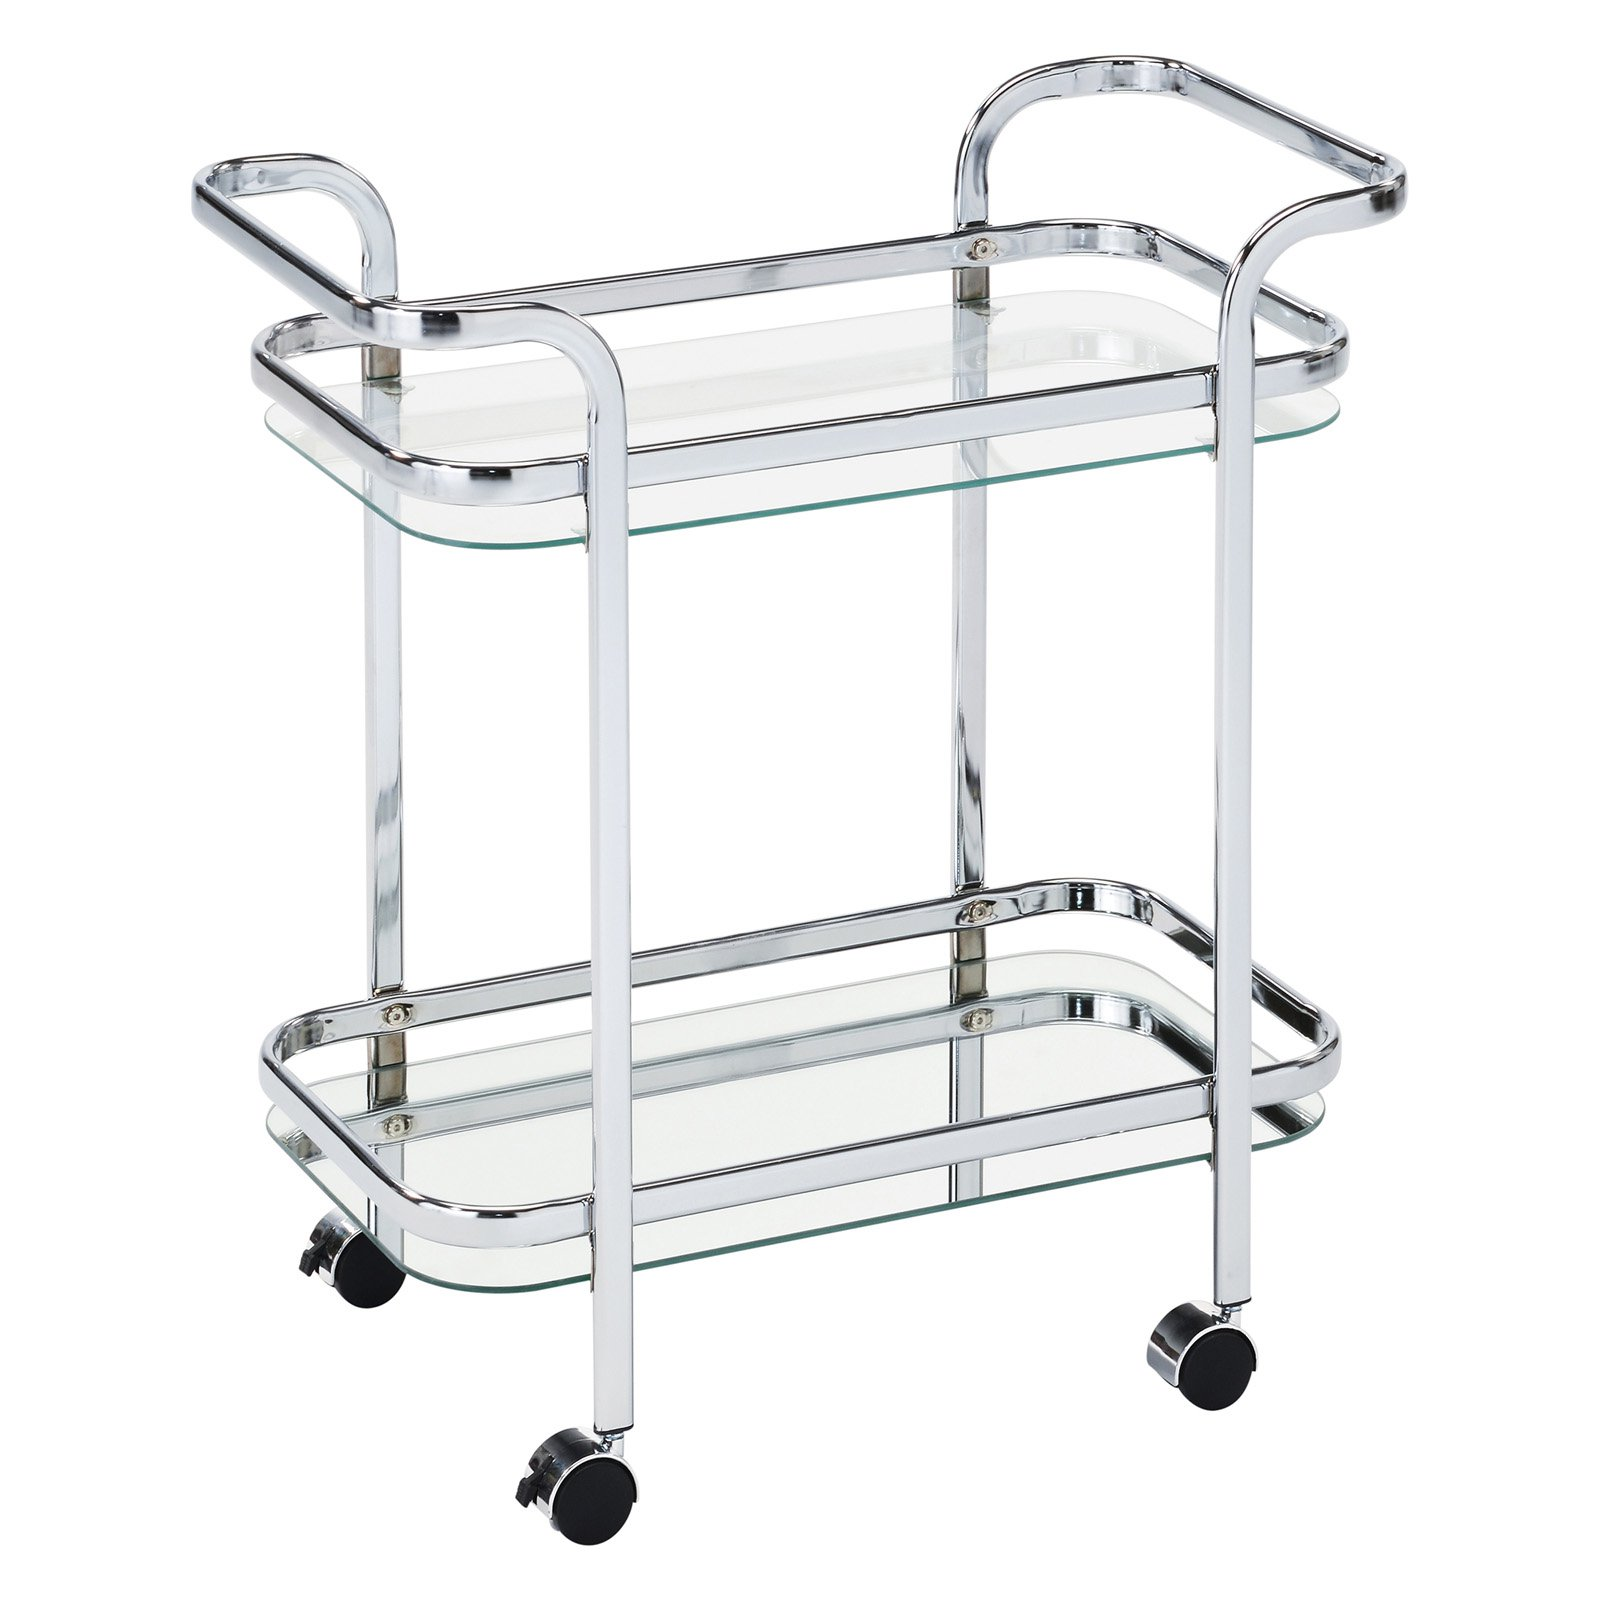 2 Tier Chrome/Glass Bar Cart